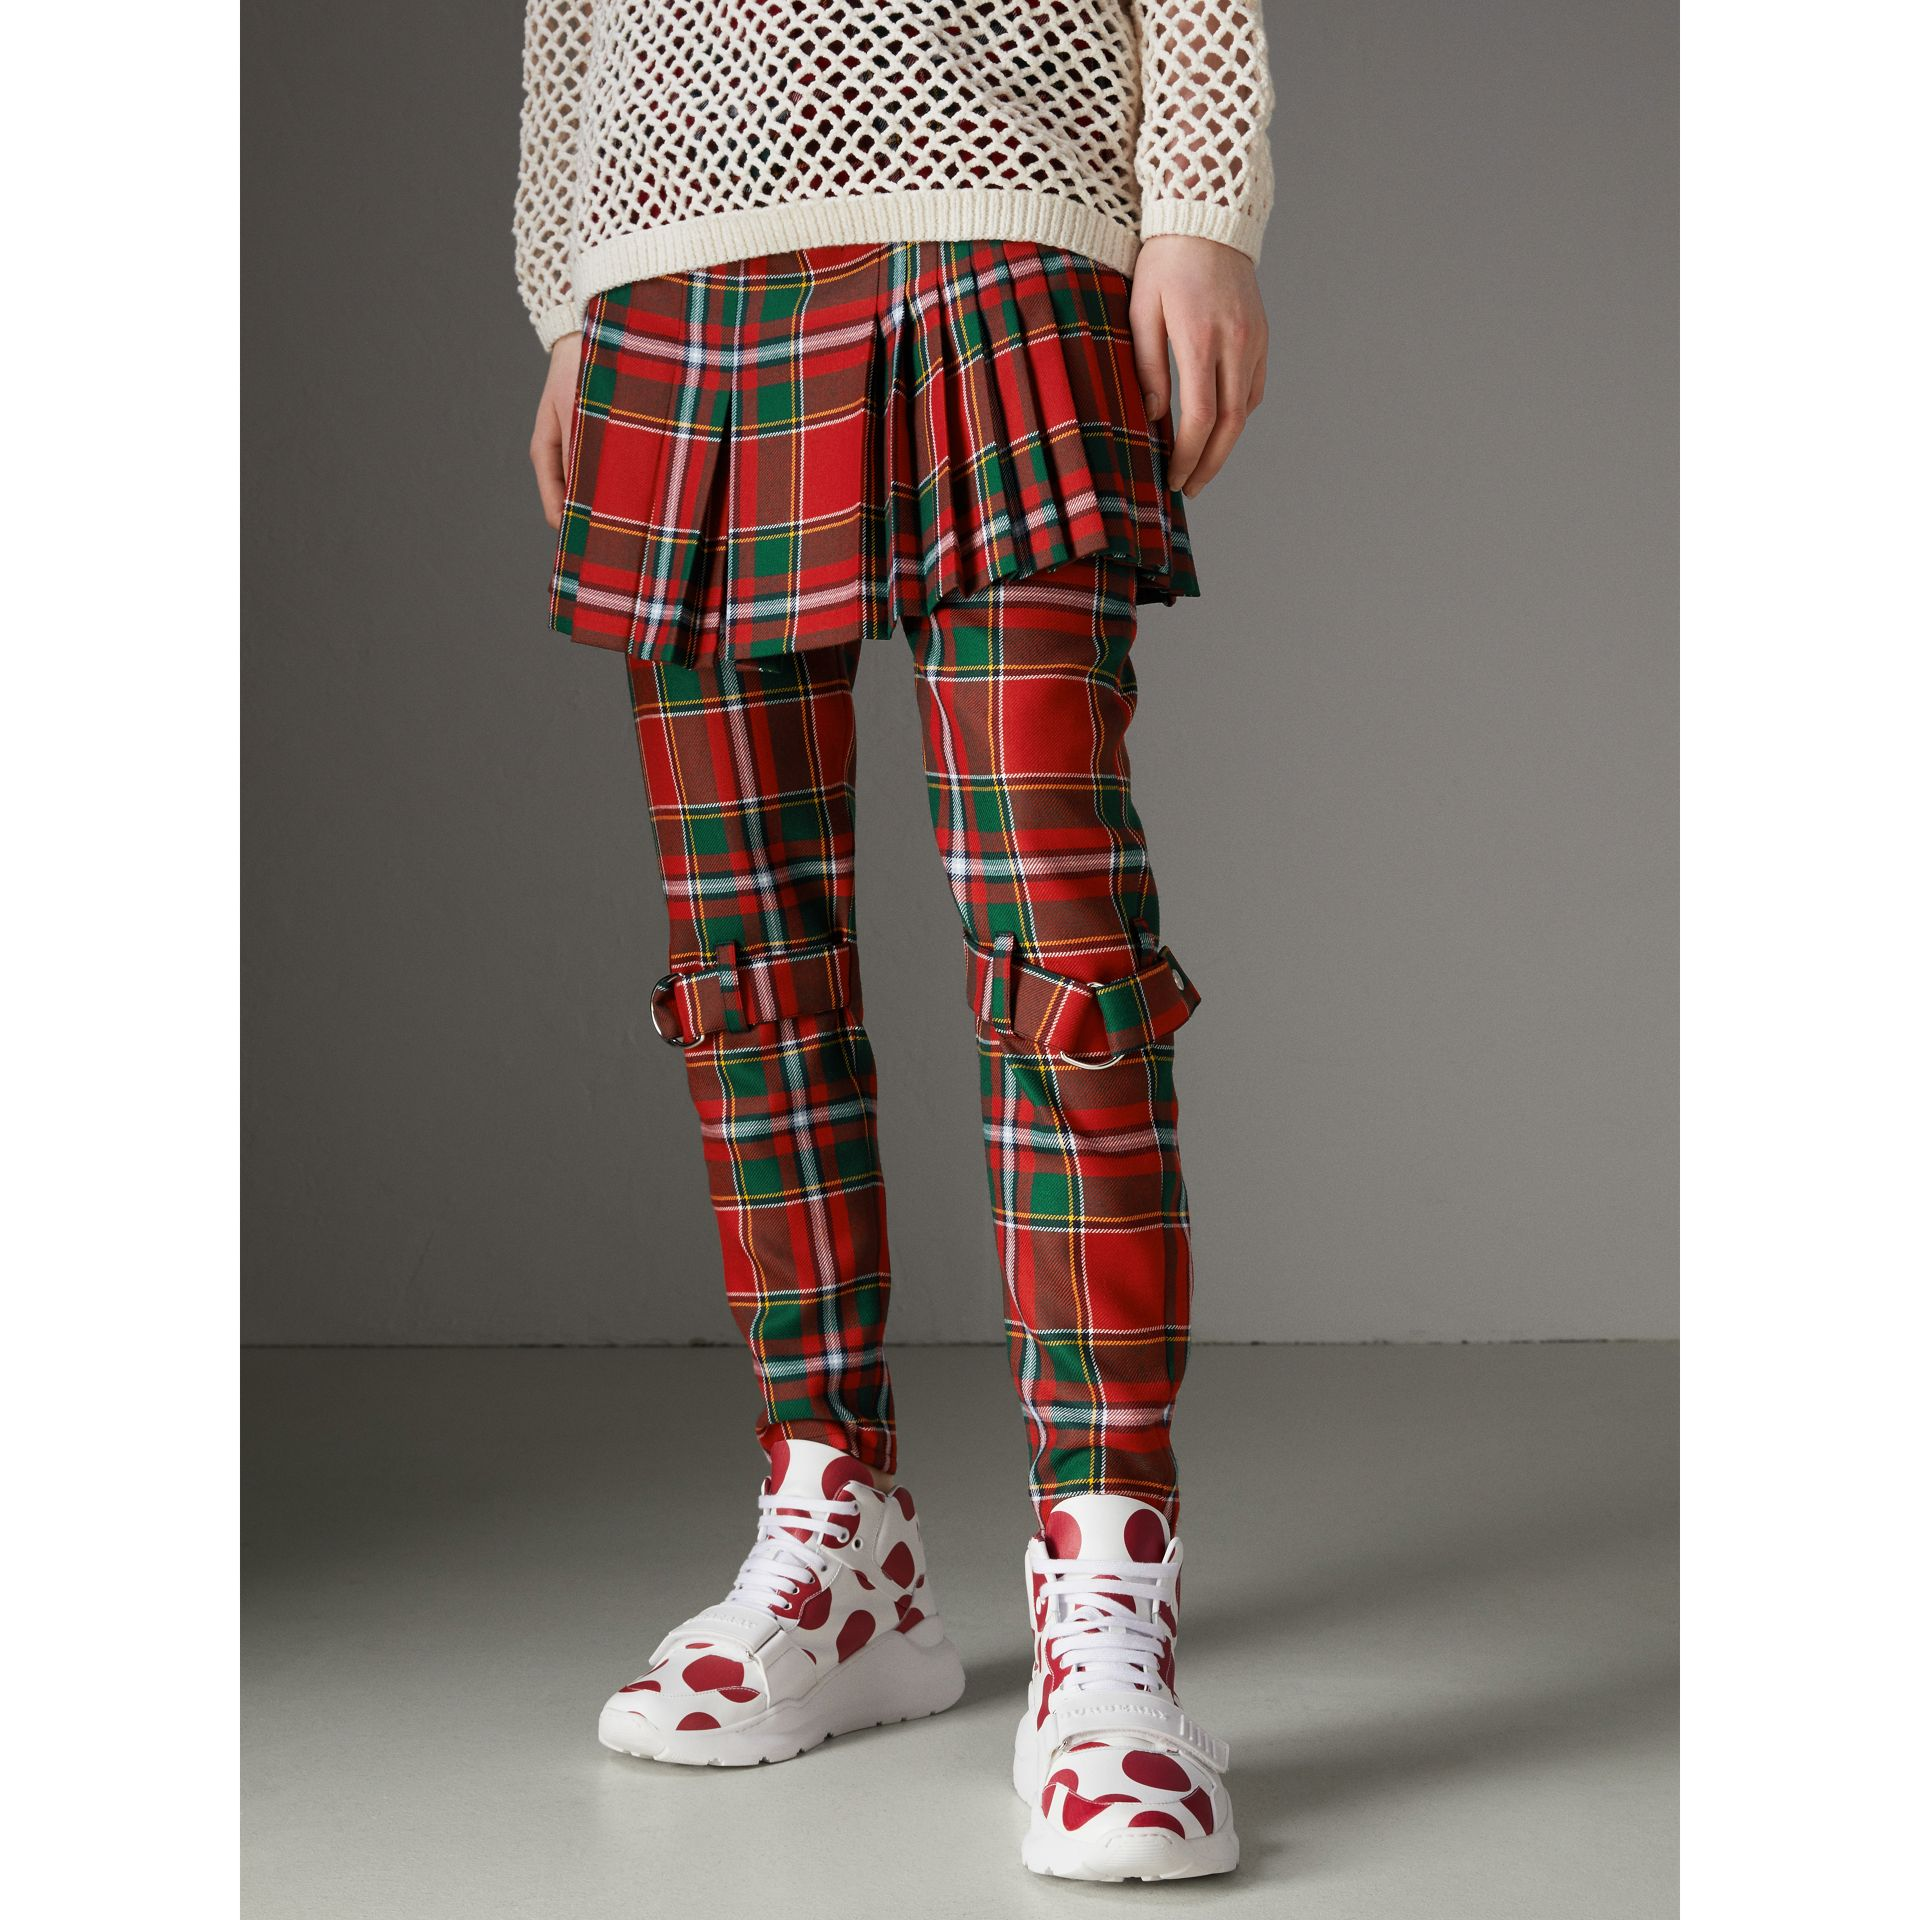 Pantalon punk en tartan Modern Stewart Royal (Rouge Vif) - Femme | Burberry - photo de la galerie 6